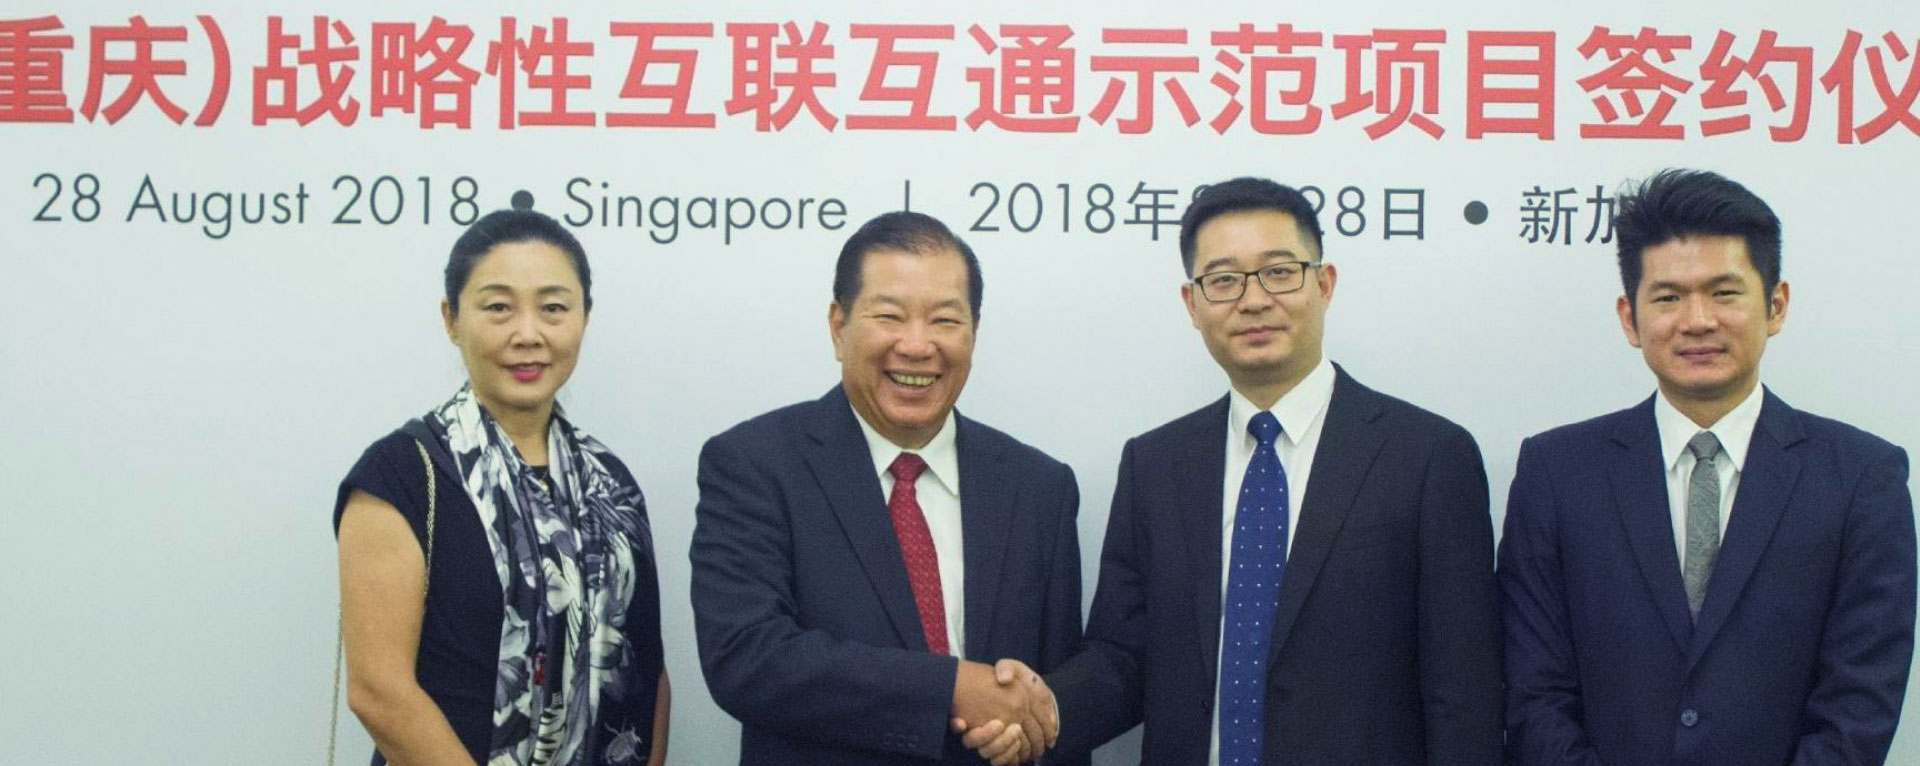 First Eldercare Provider under the Chongqing Connectivity Initiative